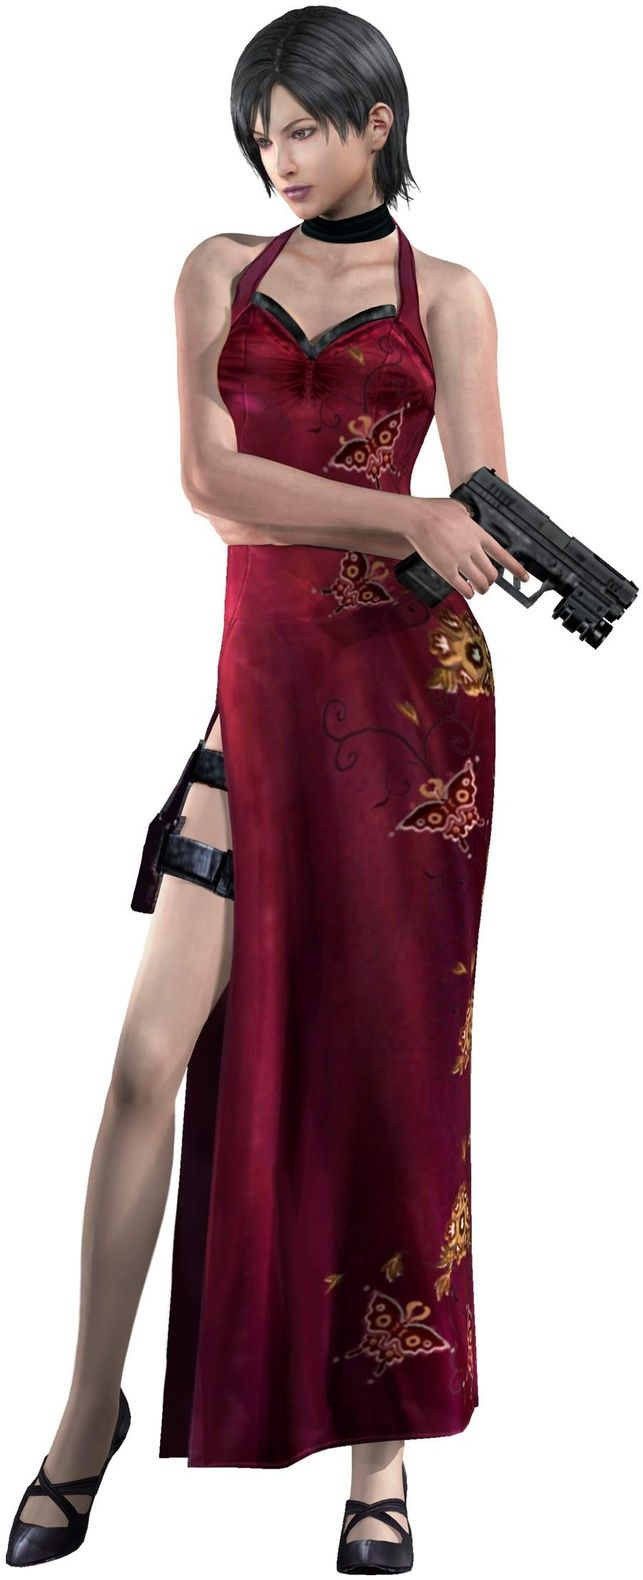 Ada Wong (Resident Evil 4)  #residentevil I love that dress.